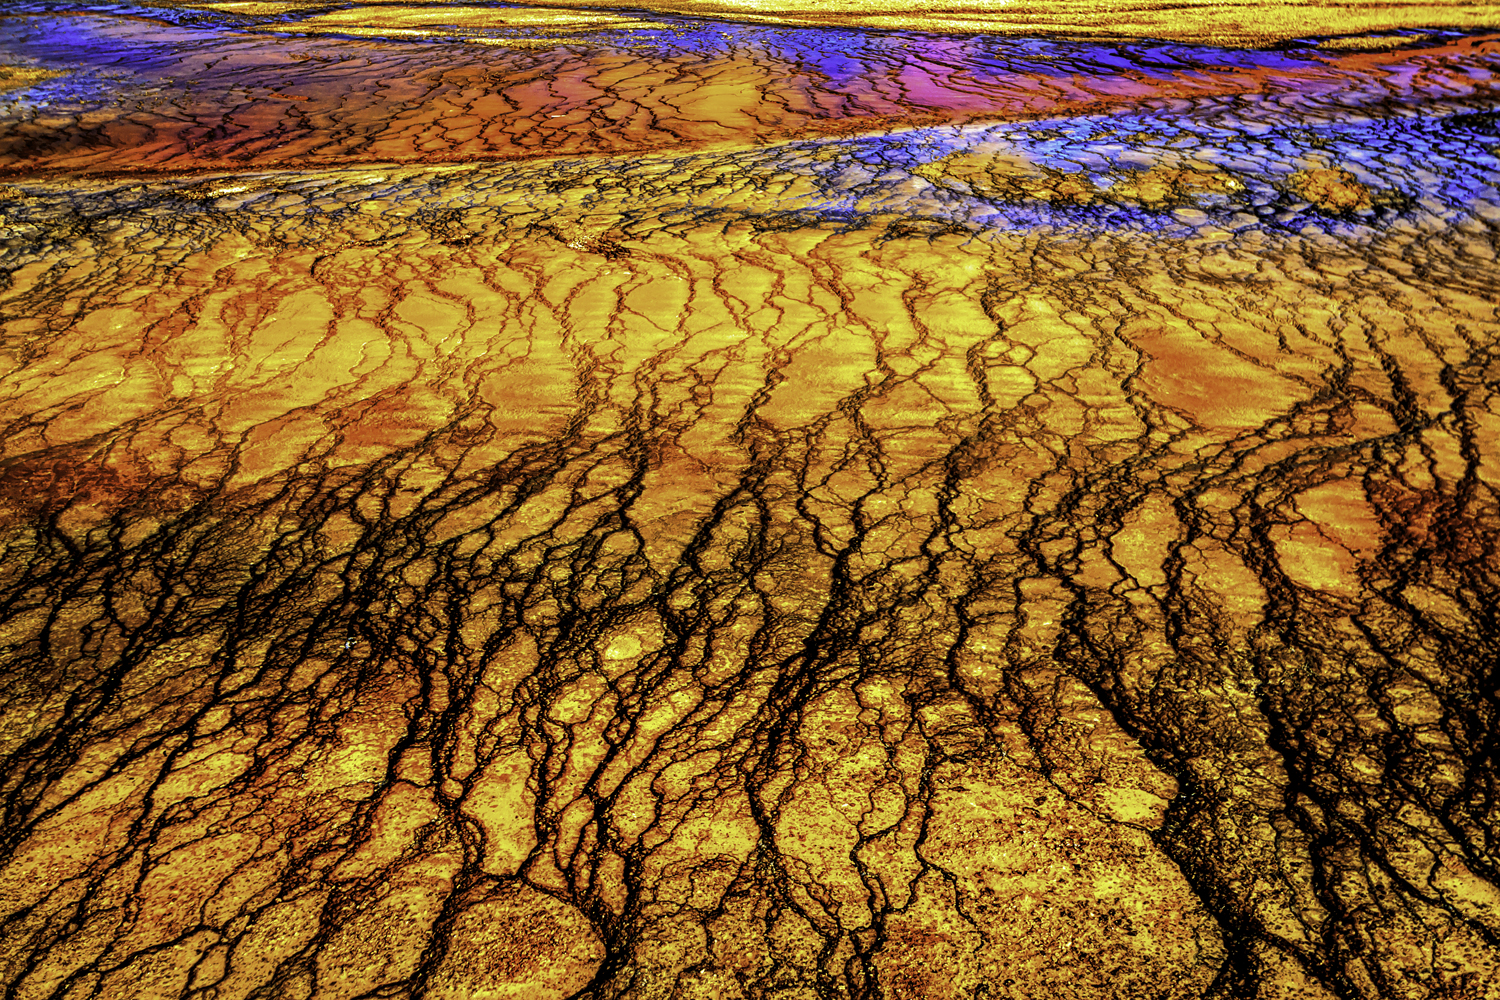 Yellowstone National Park (abstract)